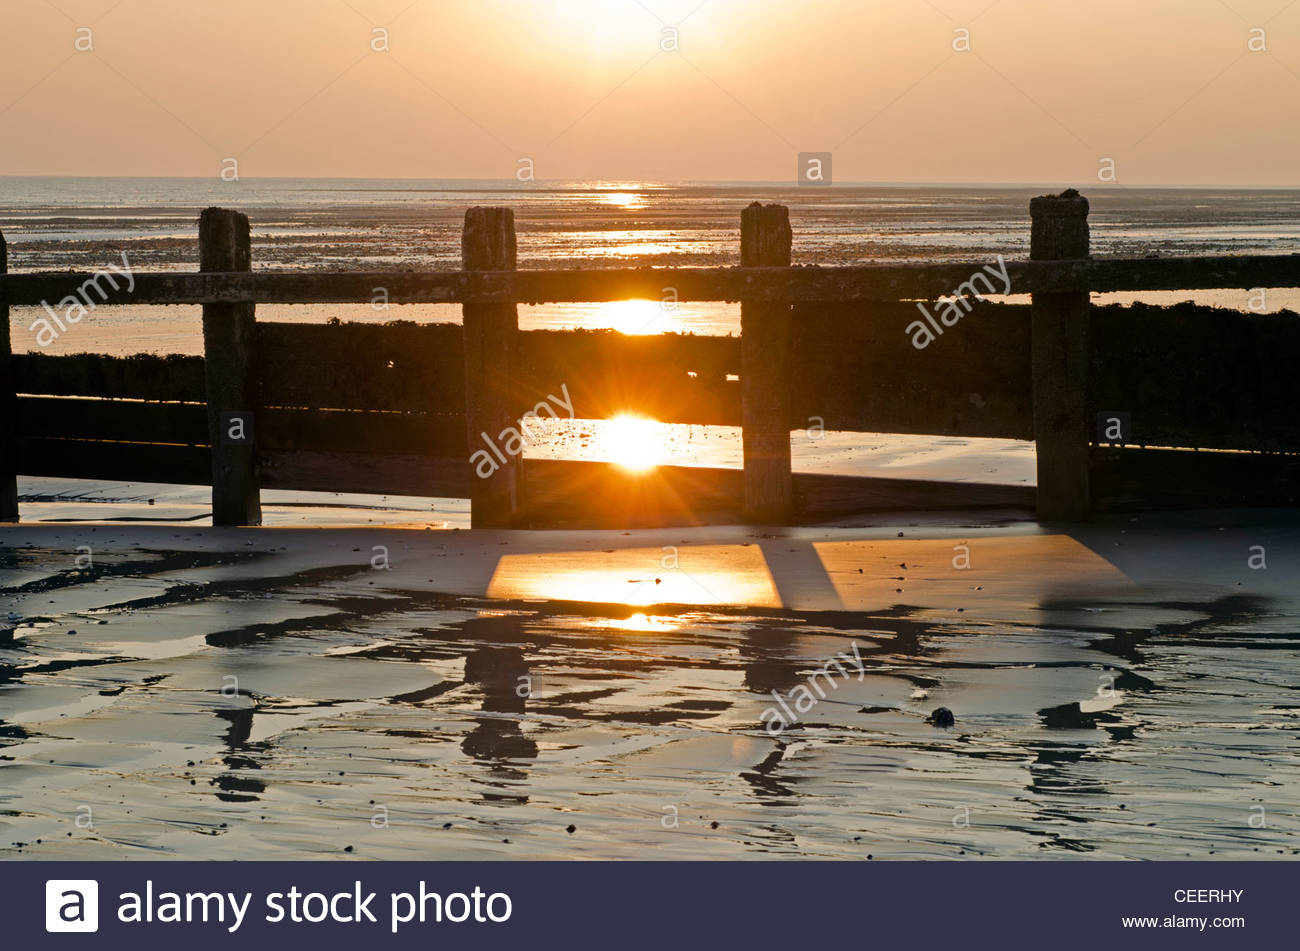 Groyne on a sandy beach at sunset with the low sun reflecting in wet sand on the South Coast of England, UK. - Stock Image